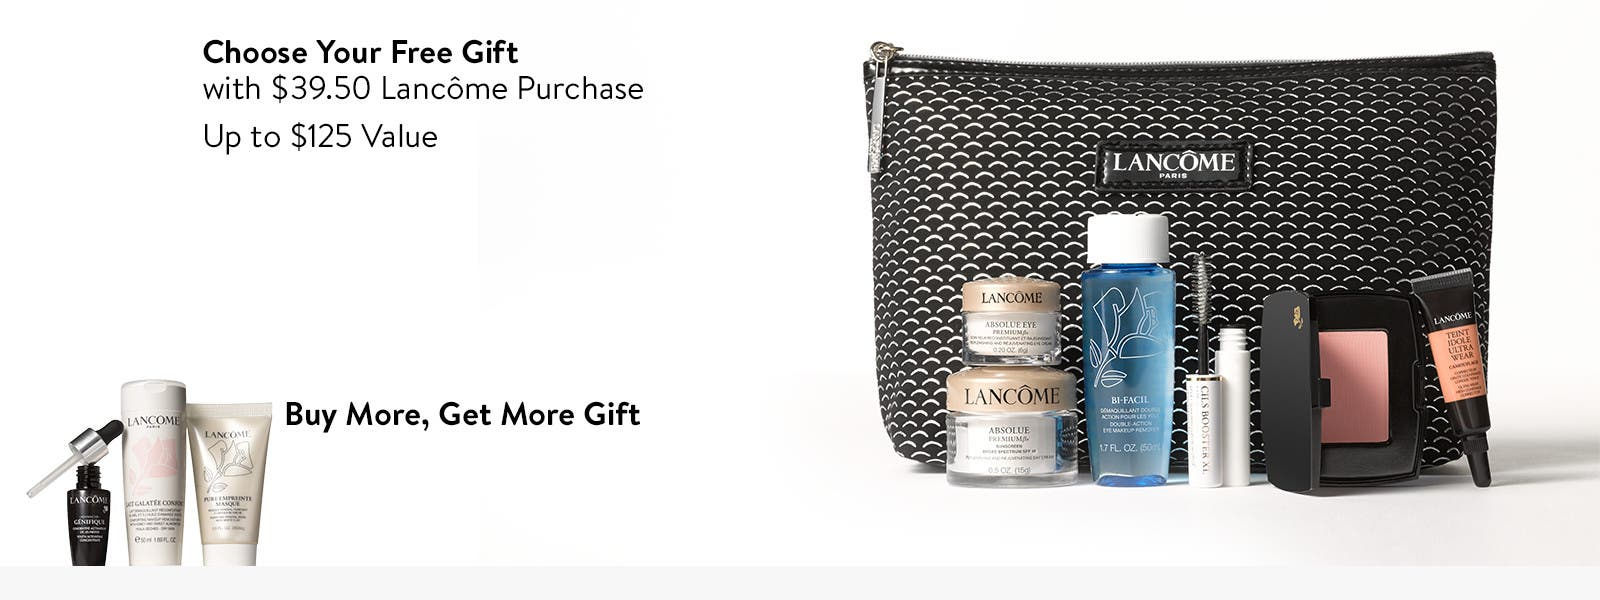 Choose your free gift with $39.50 Lancôme purchase. Up to $125 Value. Buy more